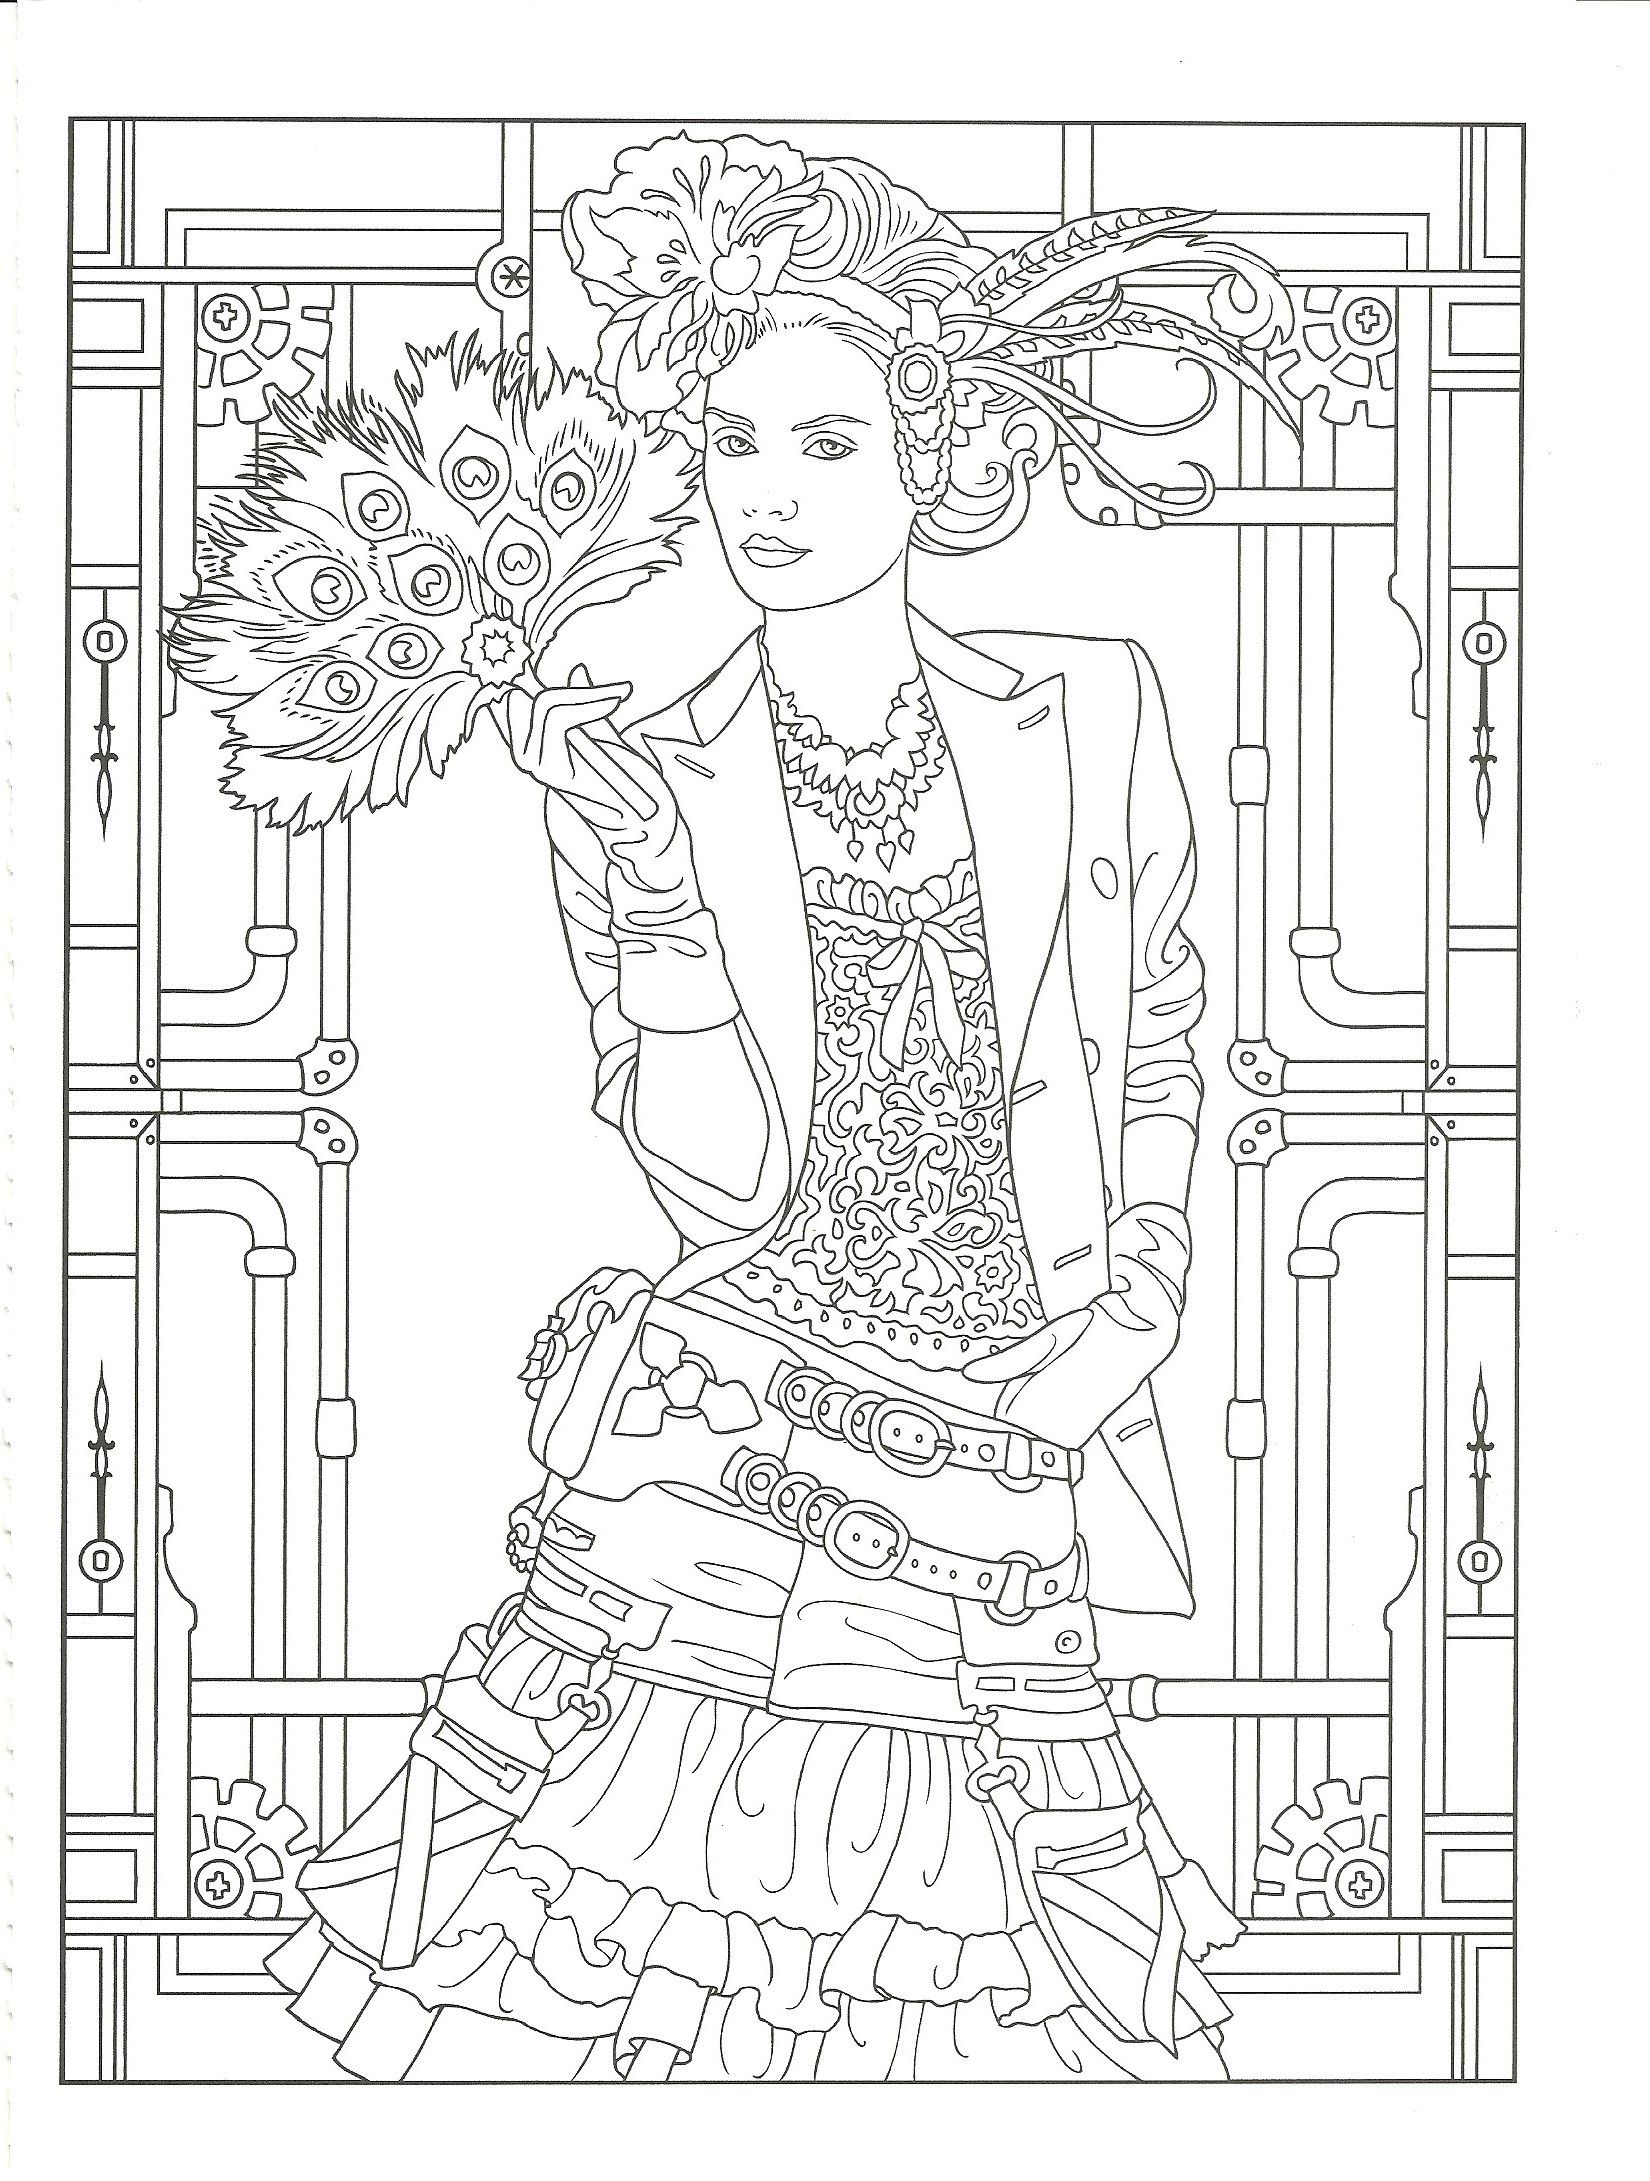 The coloring book e book - Adult Coloring Page From Creative Haven Steampunk Fashions Coloring Book Dover Publications Artwork By